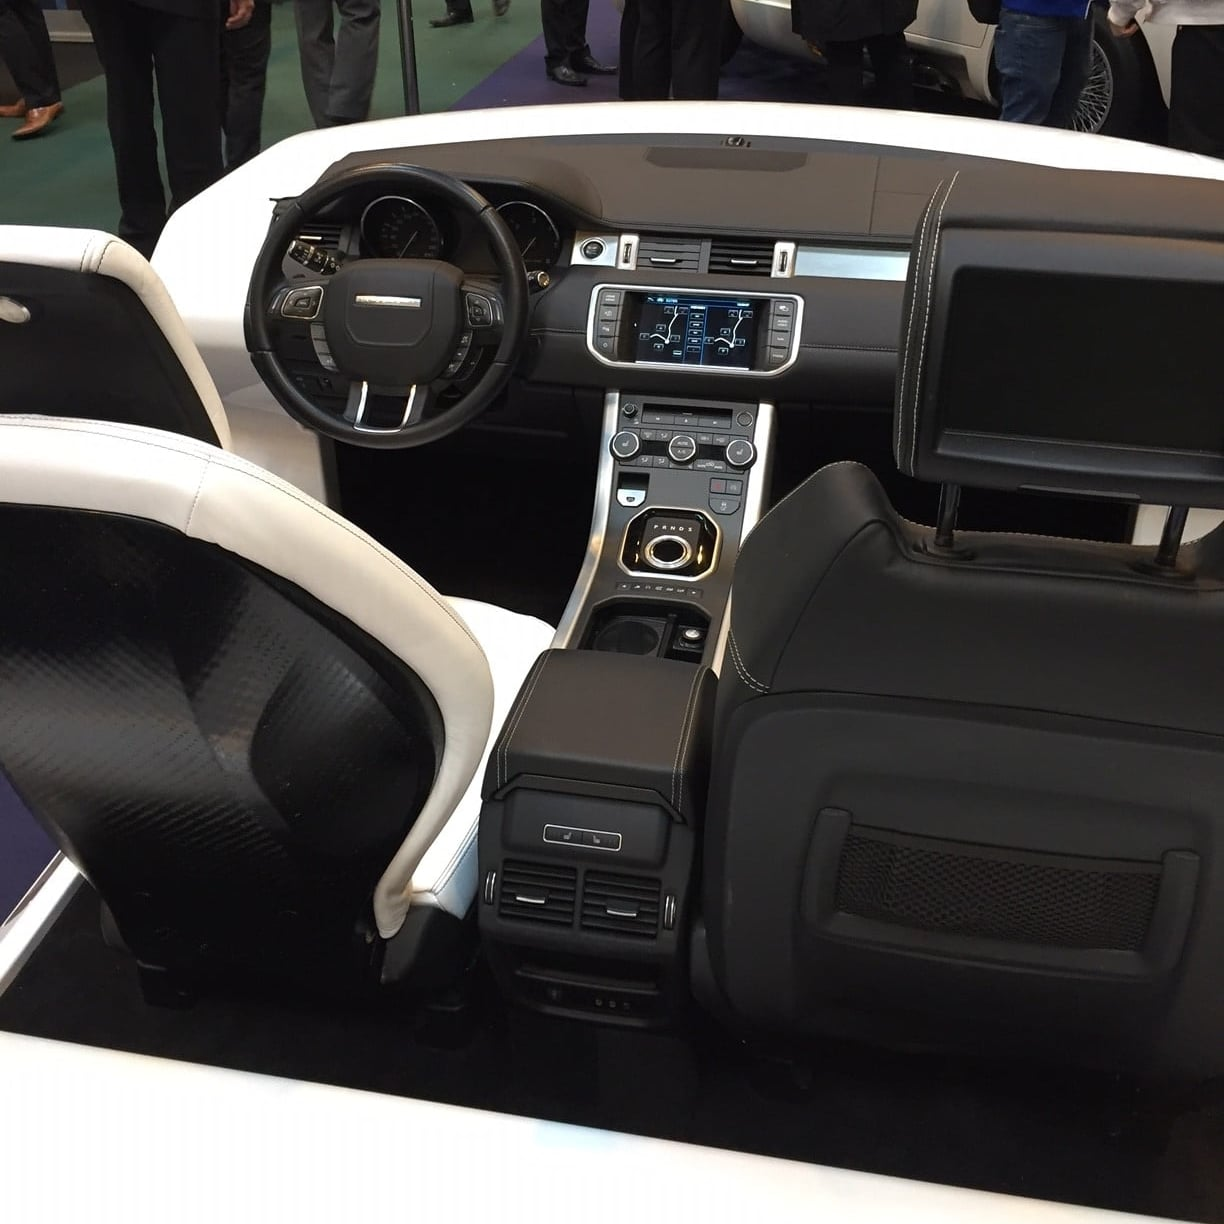 District Designs - Advanced Engineering show - Range Rover Interior